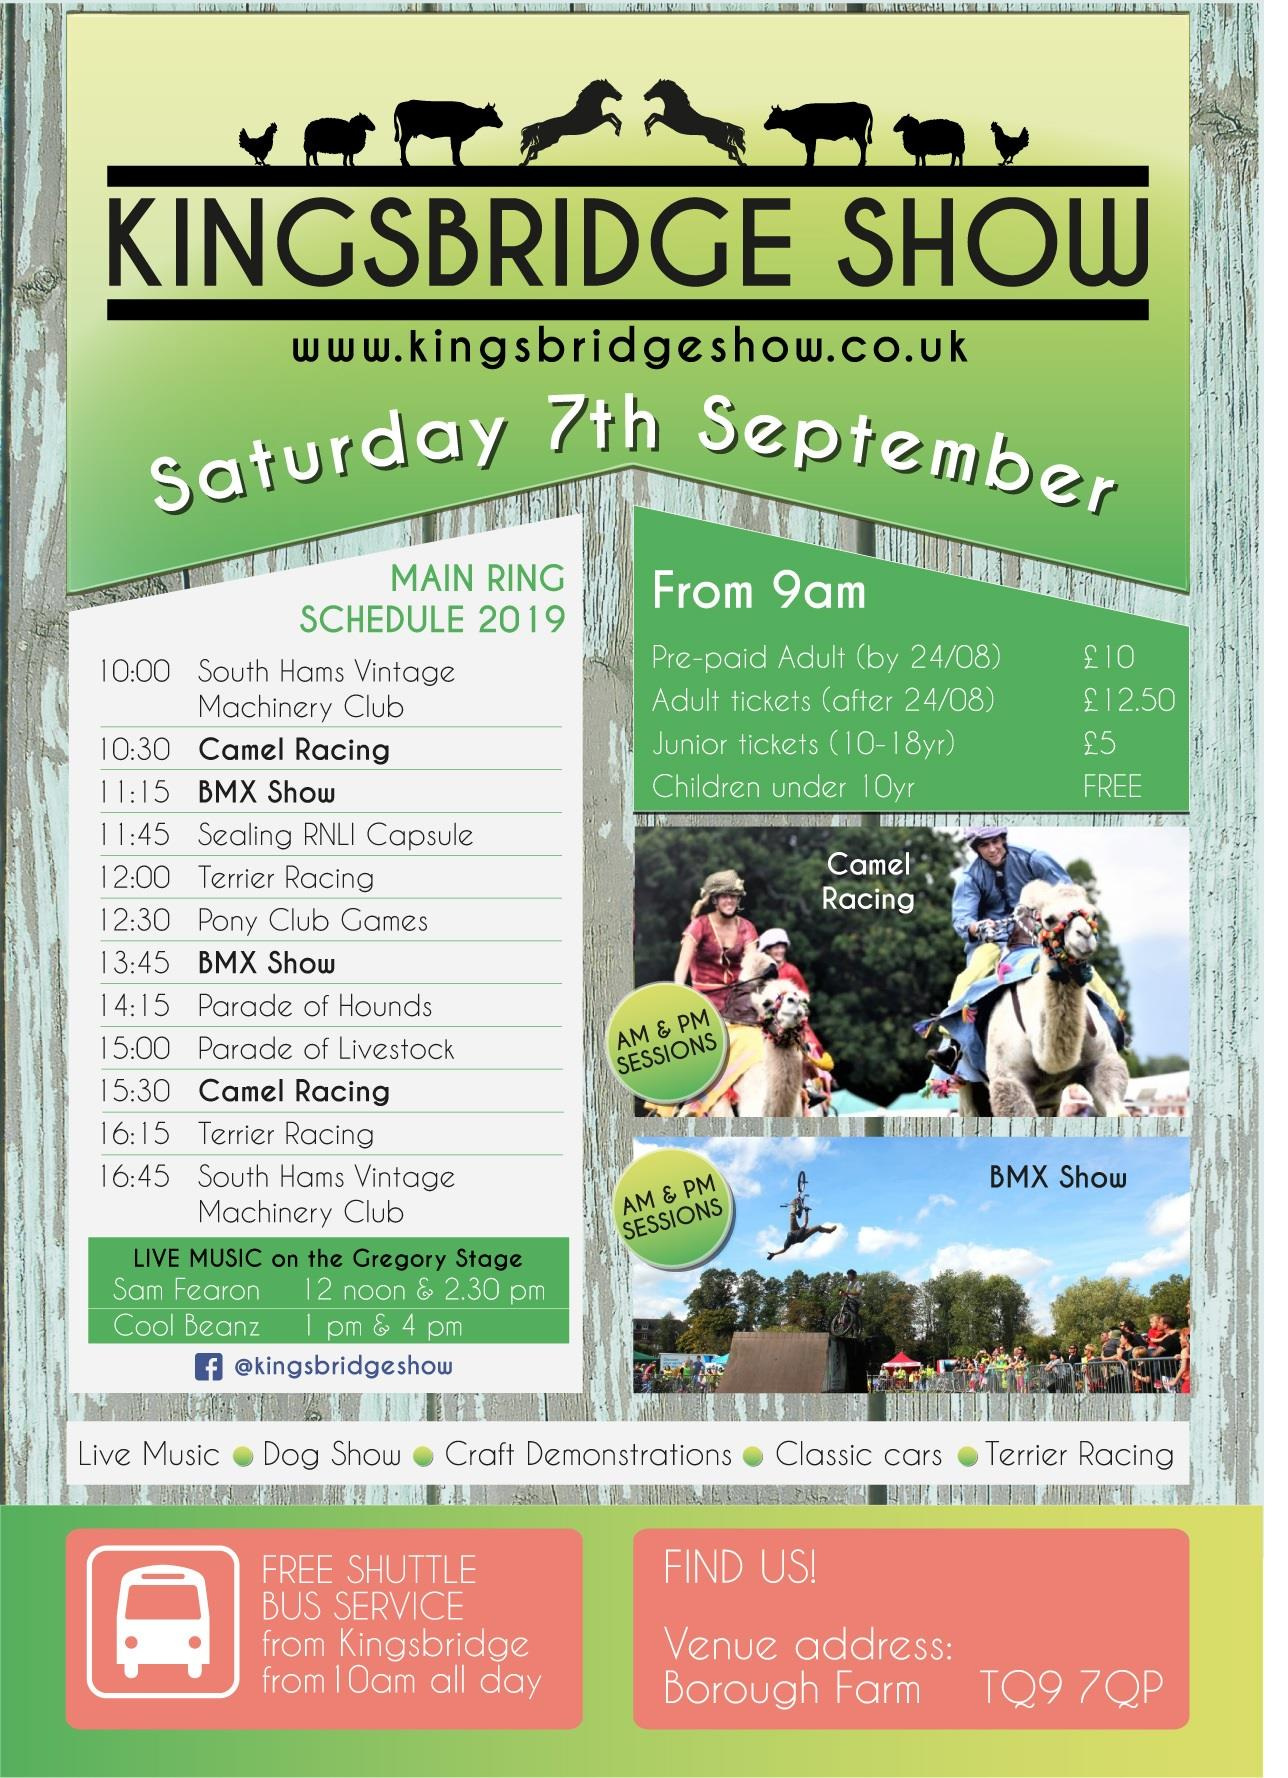 Kingsbridge Show - Saturday 7th September